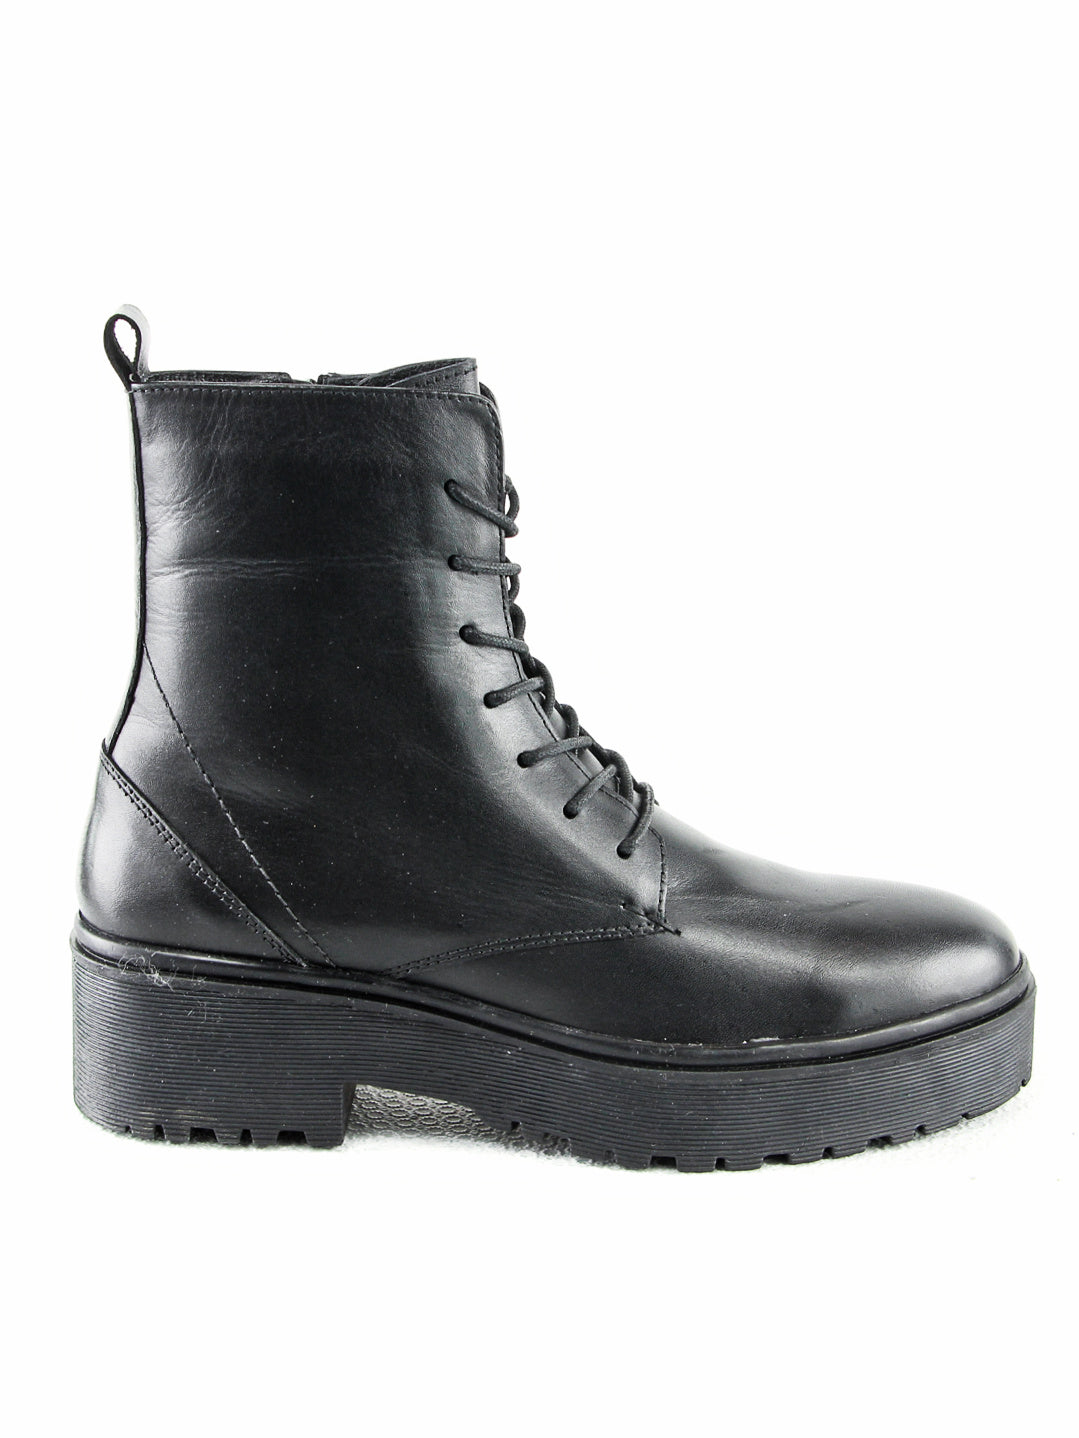 MATILDA | Leather Lace-Up Boots | Black